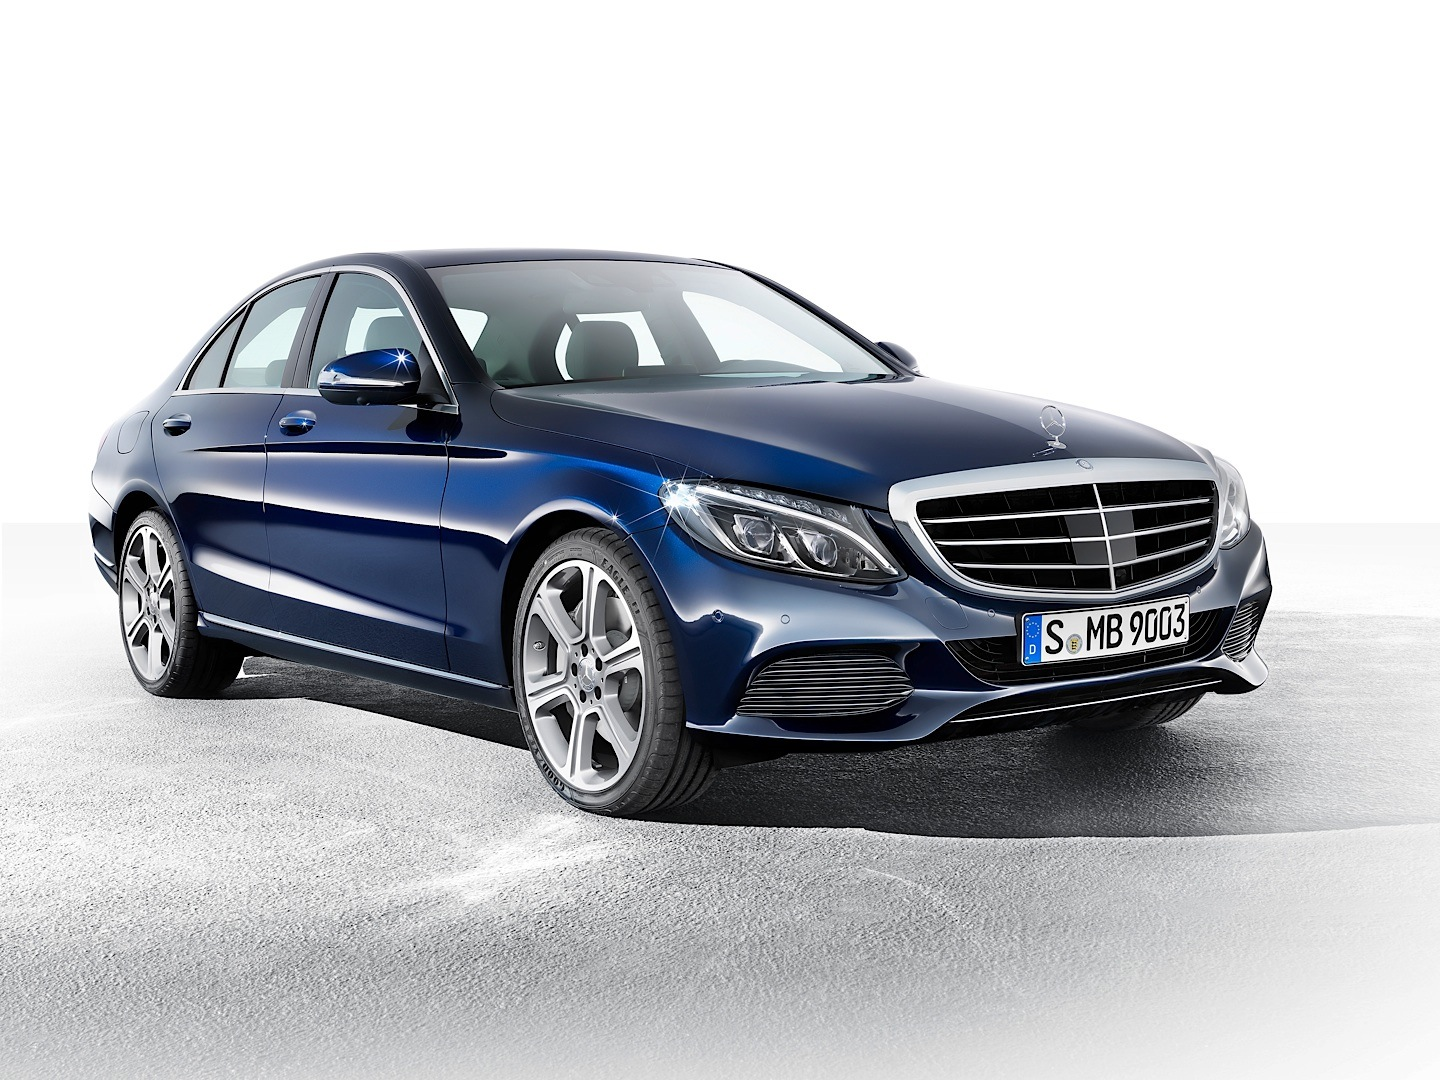 2015 mercedes benz c class w205 gets priced in the uk for Mercedes benz 2015 c class price